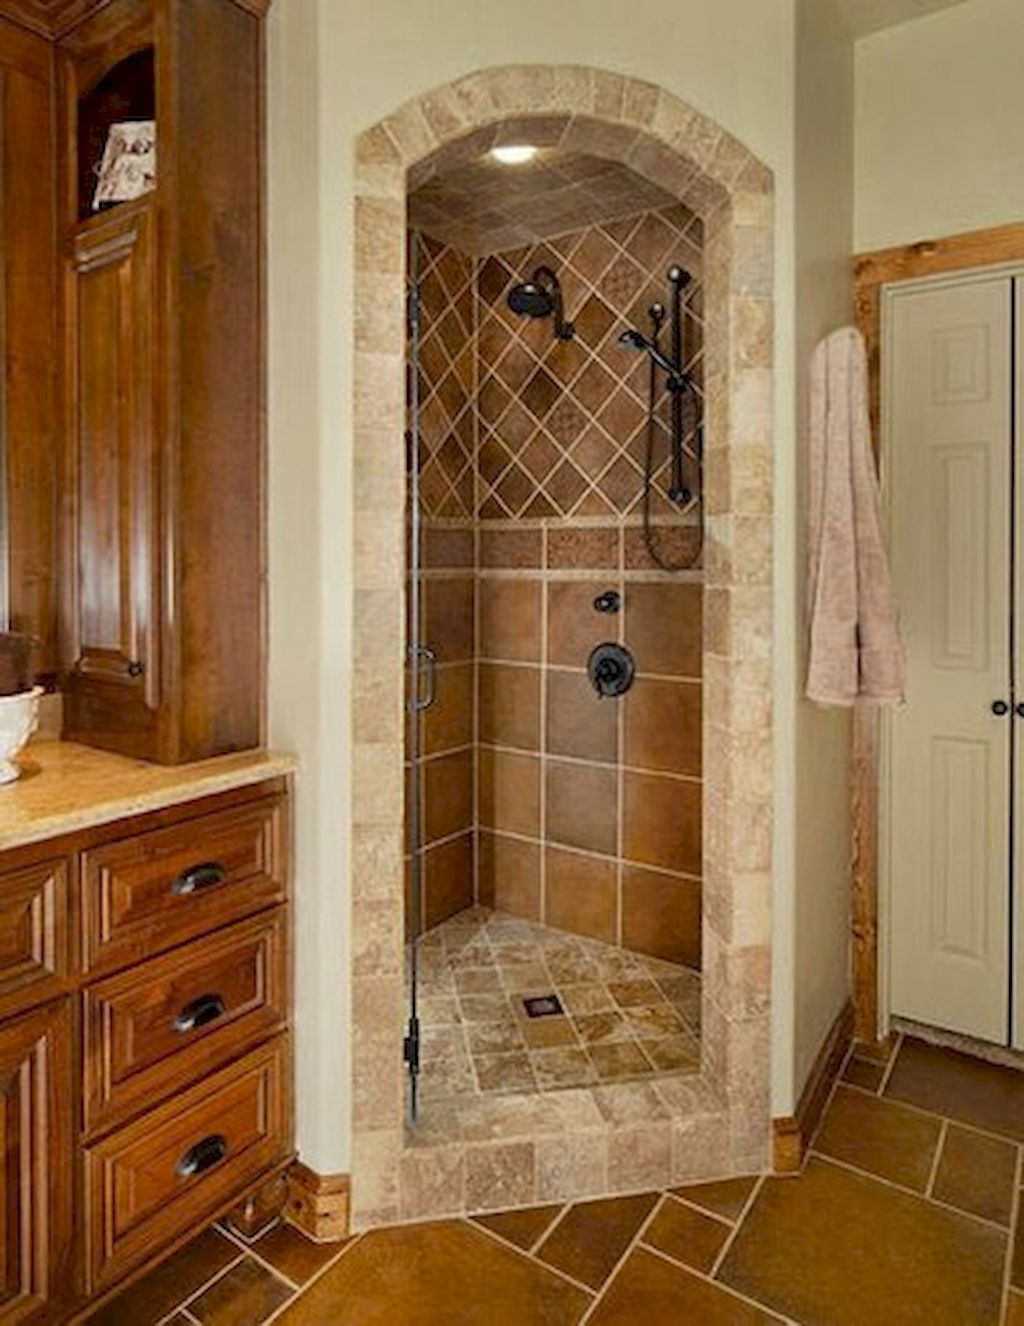 Shower with window ideas  fresh small master bathroom remodel ideas on a budget   pinterest